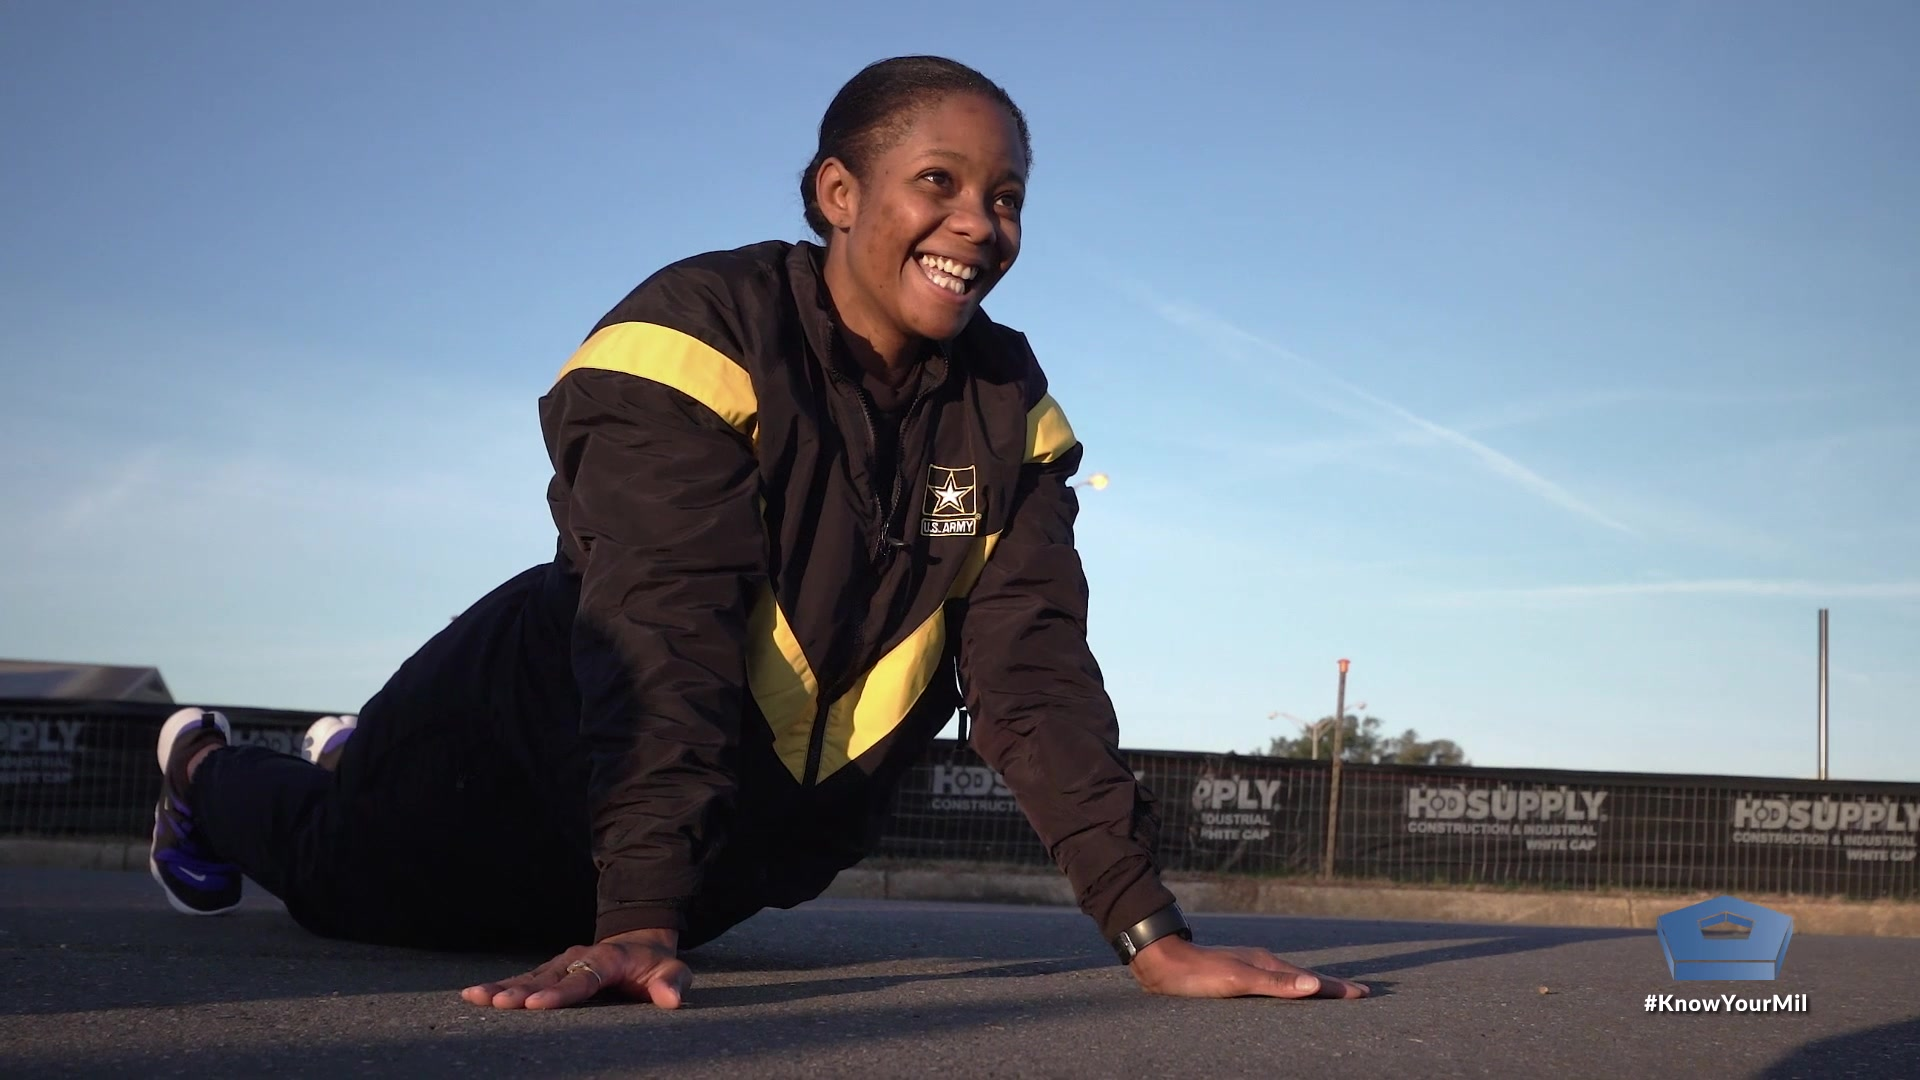 Alisia McKennon shares how she went from 275 pounds to become a fit soldier. She had failures along the way, but she says failure can inspire people to rise above their challenges and achieve their goals.  Video by Army Staff Sgt. Almon Bate, DOD